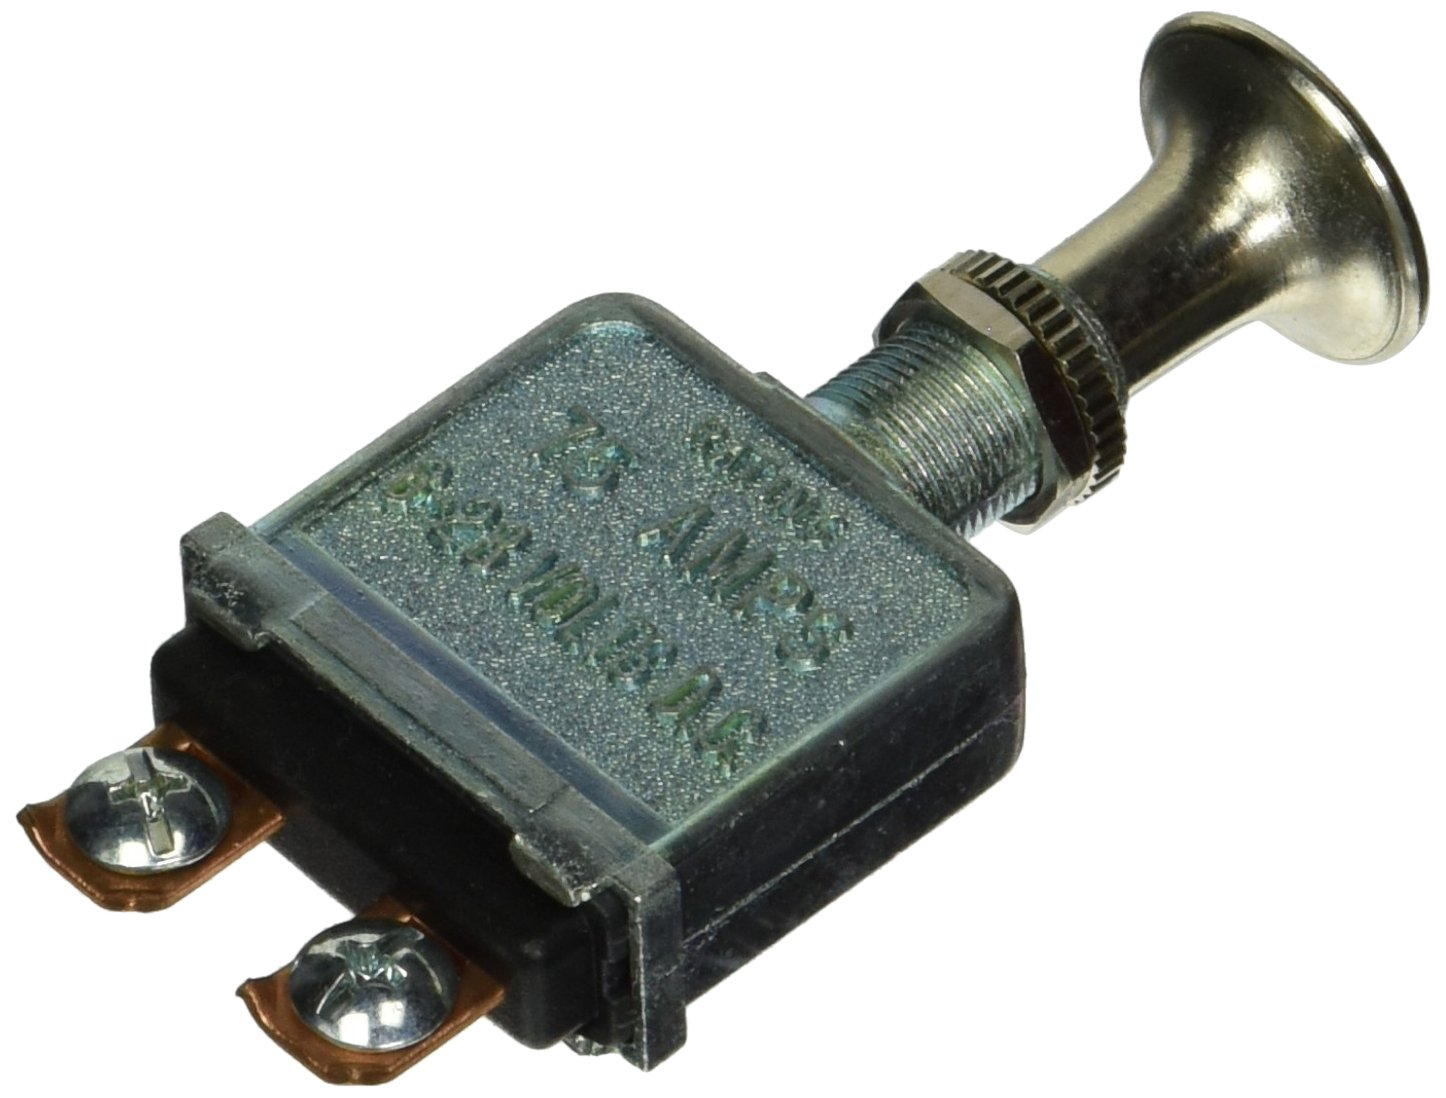 Grote 82 2100 Push Pull Switch Automotive Cole Hersee Heavy Duty Spdt Momentary Toggle 5502155021bx